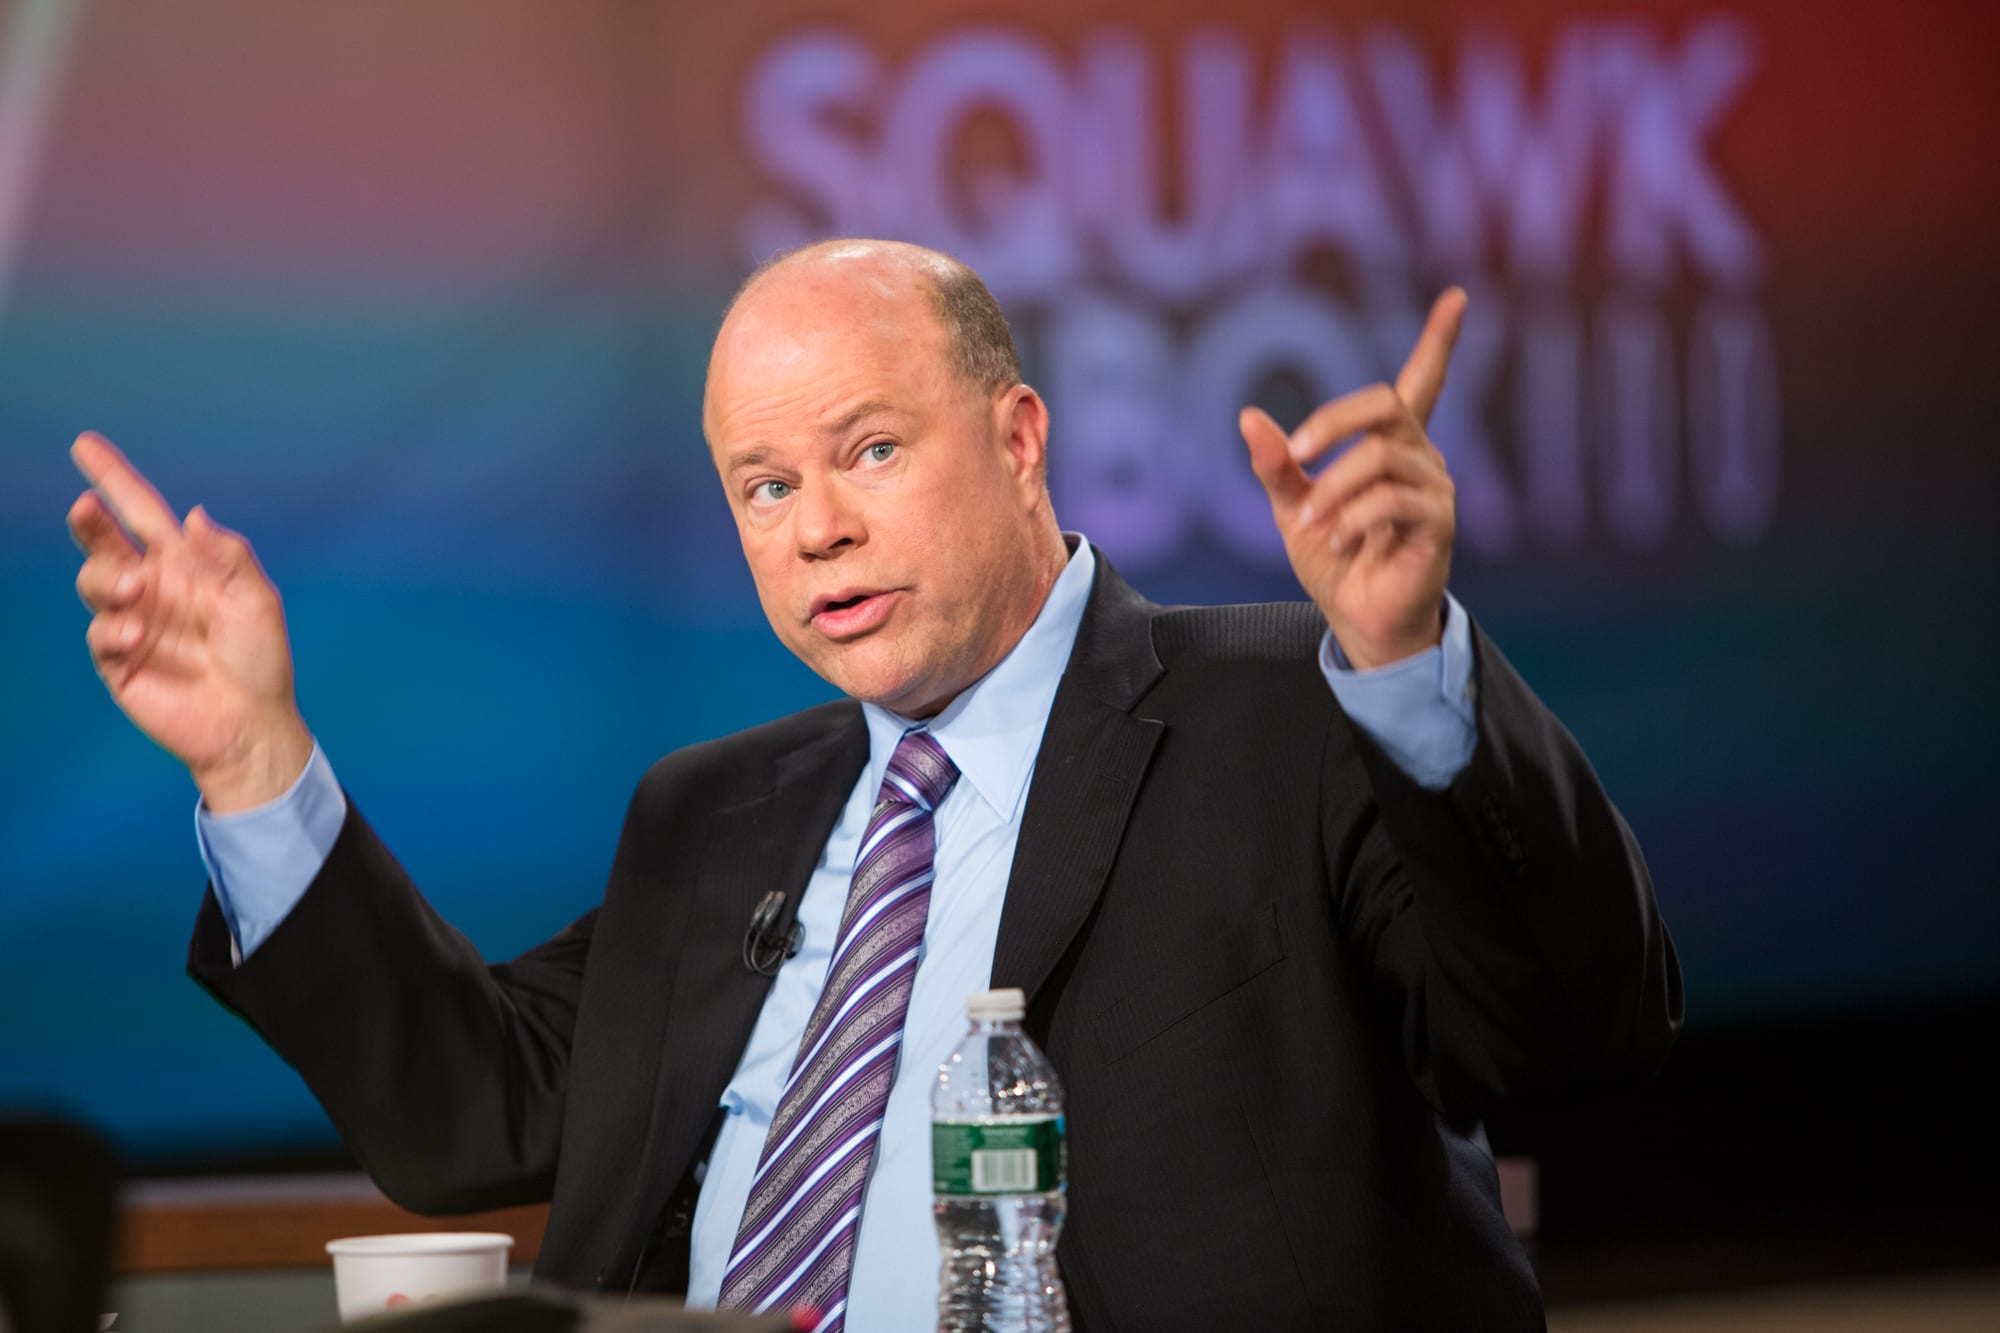 Hedge fund billionaire David Tepper's stock market advice in 2010 worked all decade